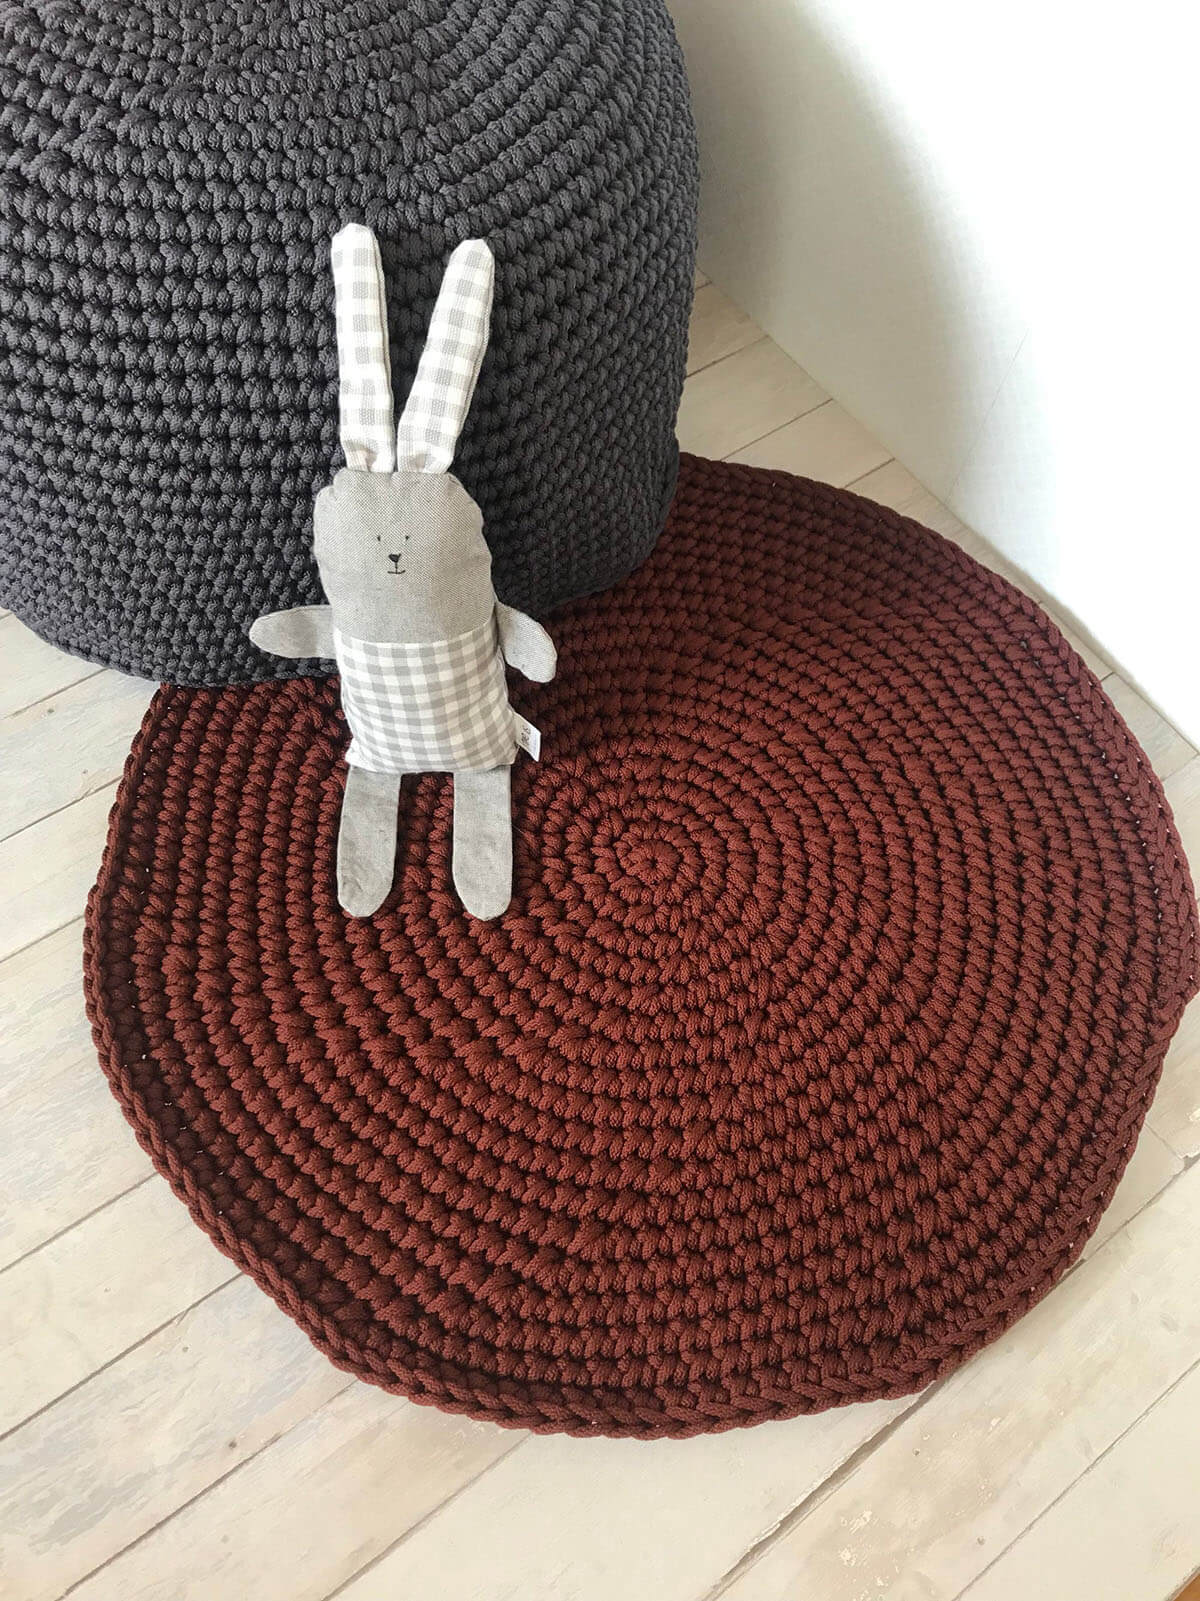 Burgundy Woven Knit Rugs Keep Things Cozy